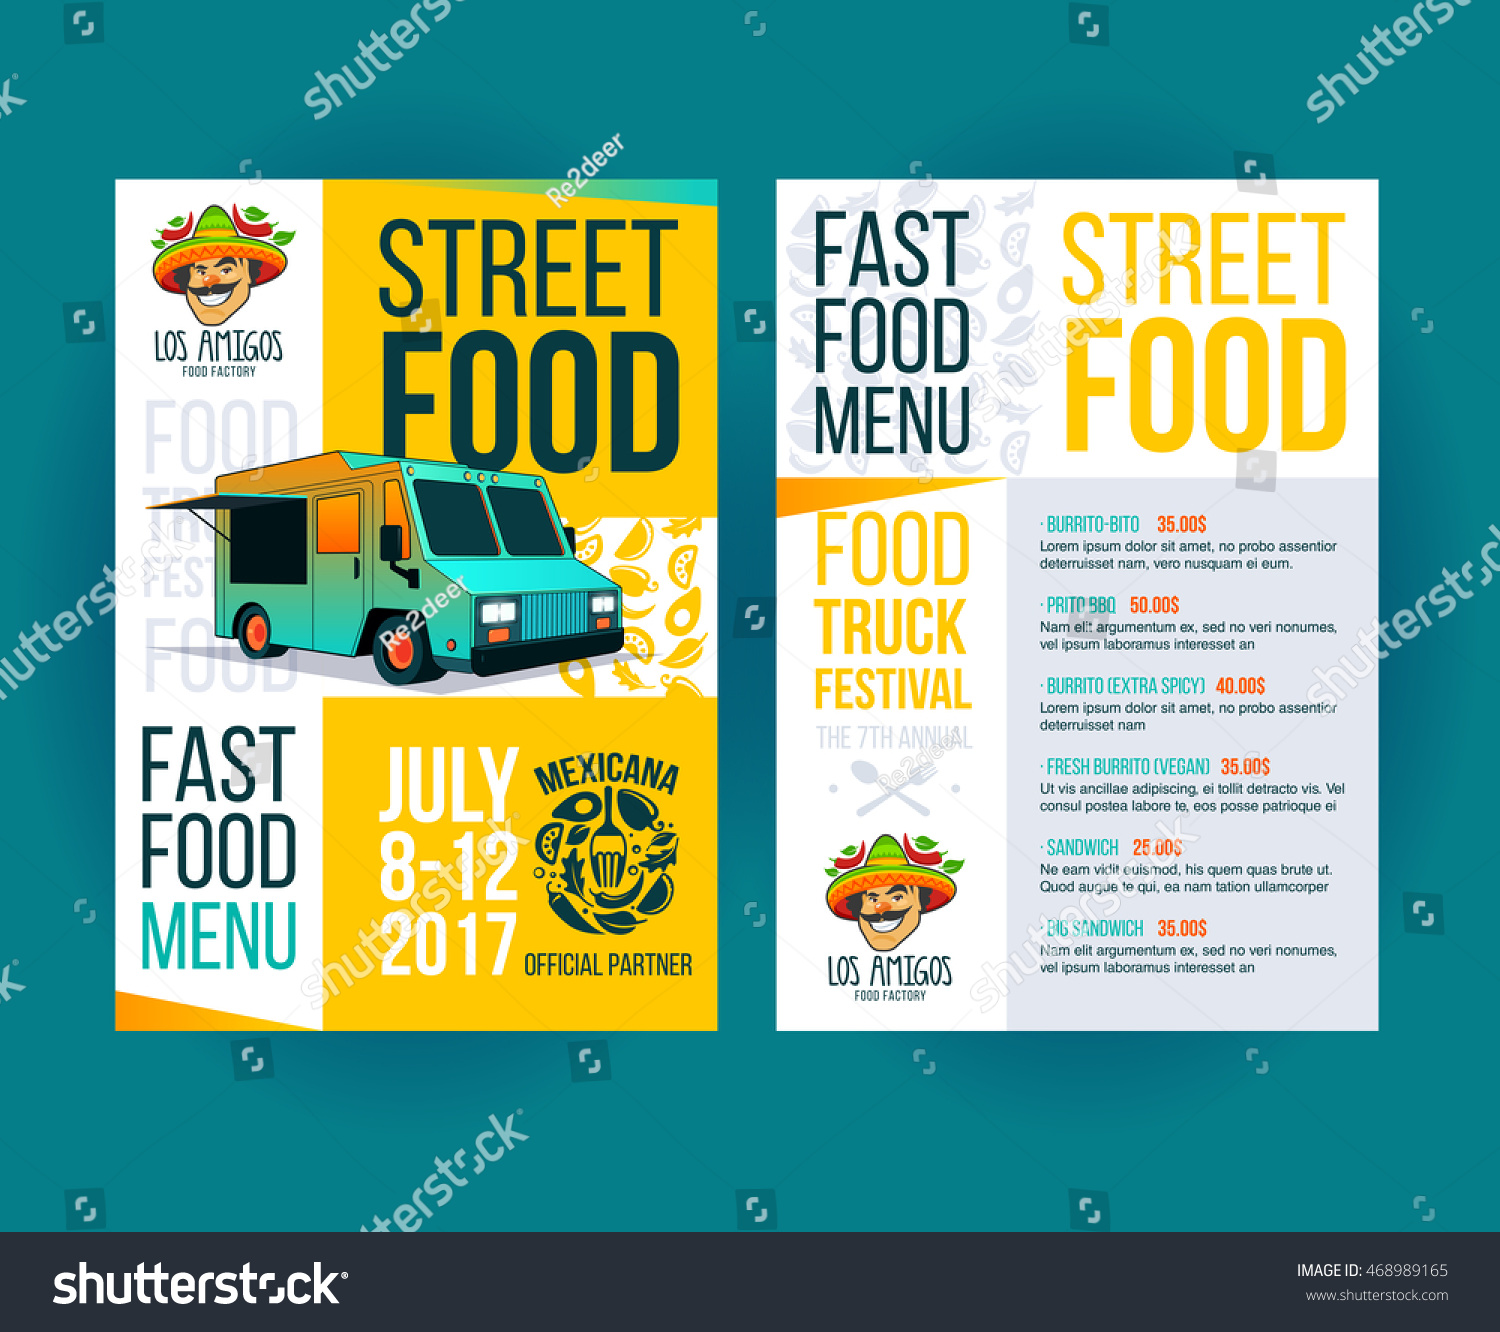 Creative Party Invitation On Food Truck Vector 468989165 – Creative Party Invitation